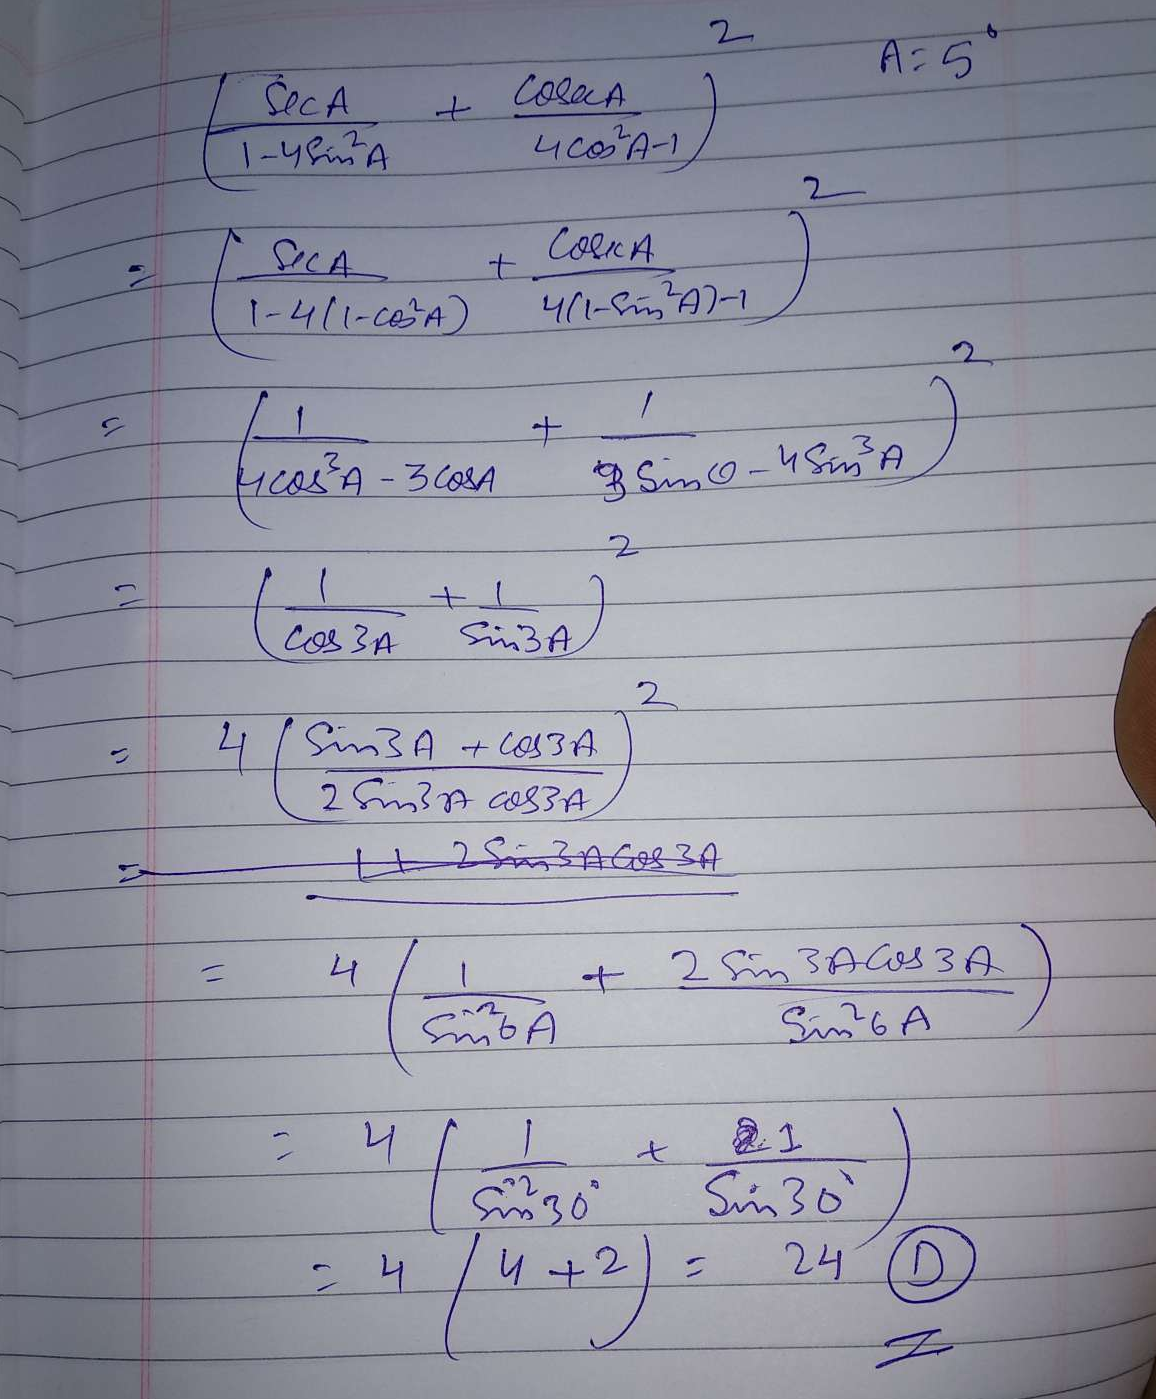 If A = 5º, then the value of the expression (sec A/1-4sin²A + cos A/4cos²A-1) is